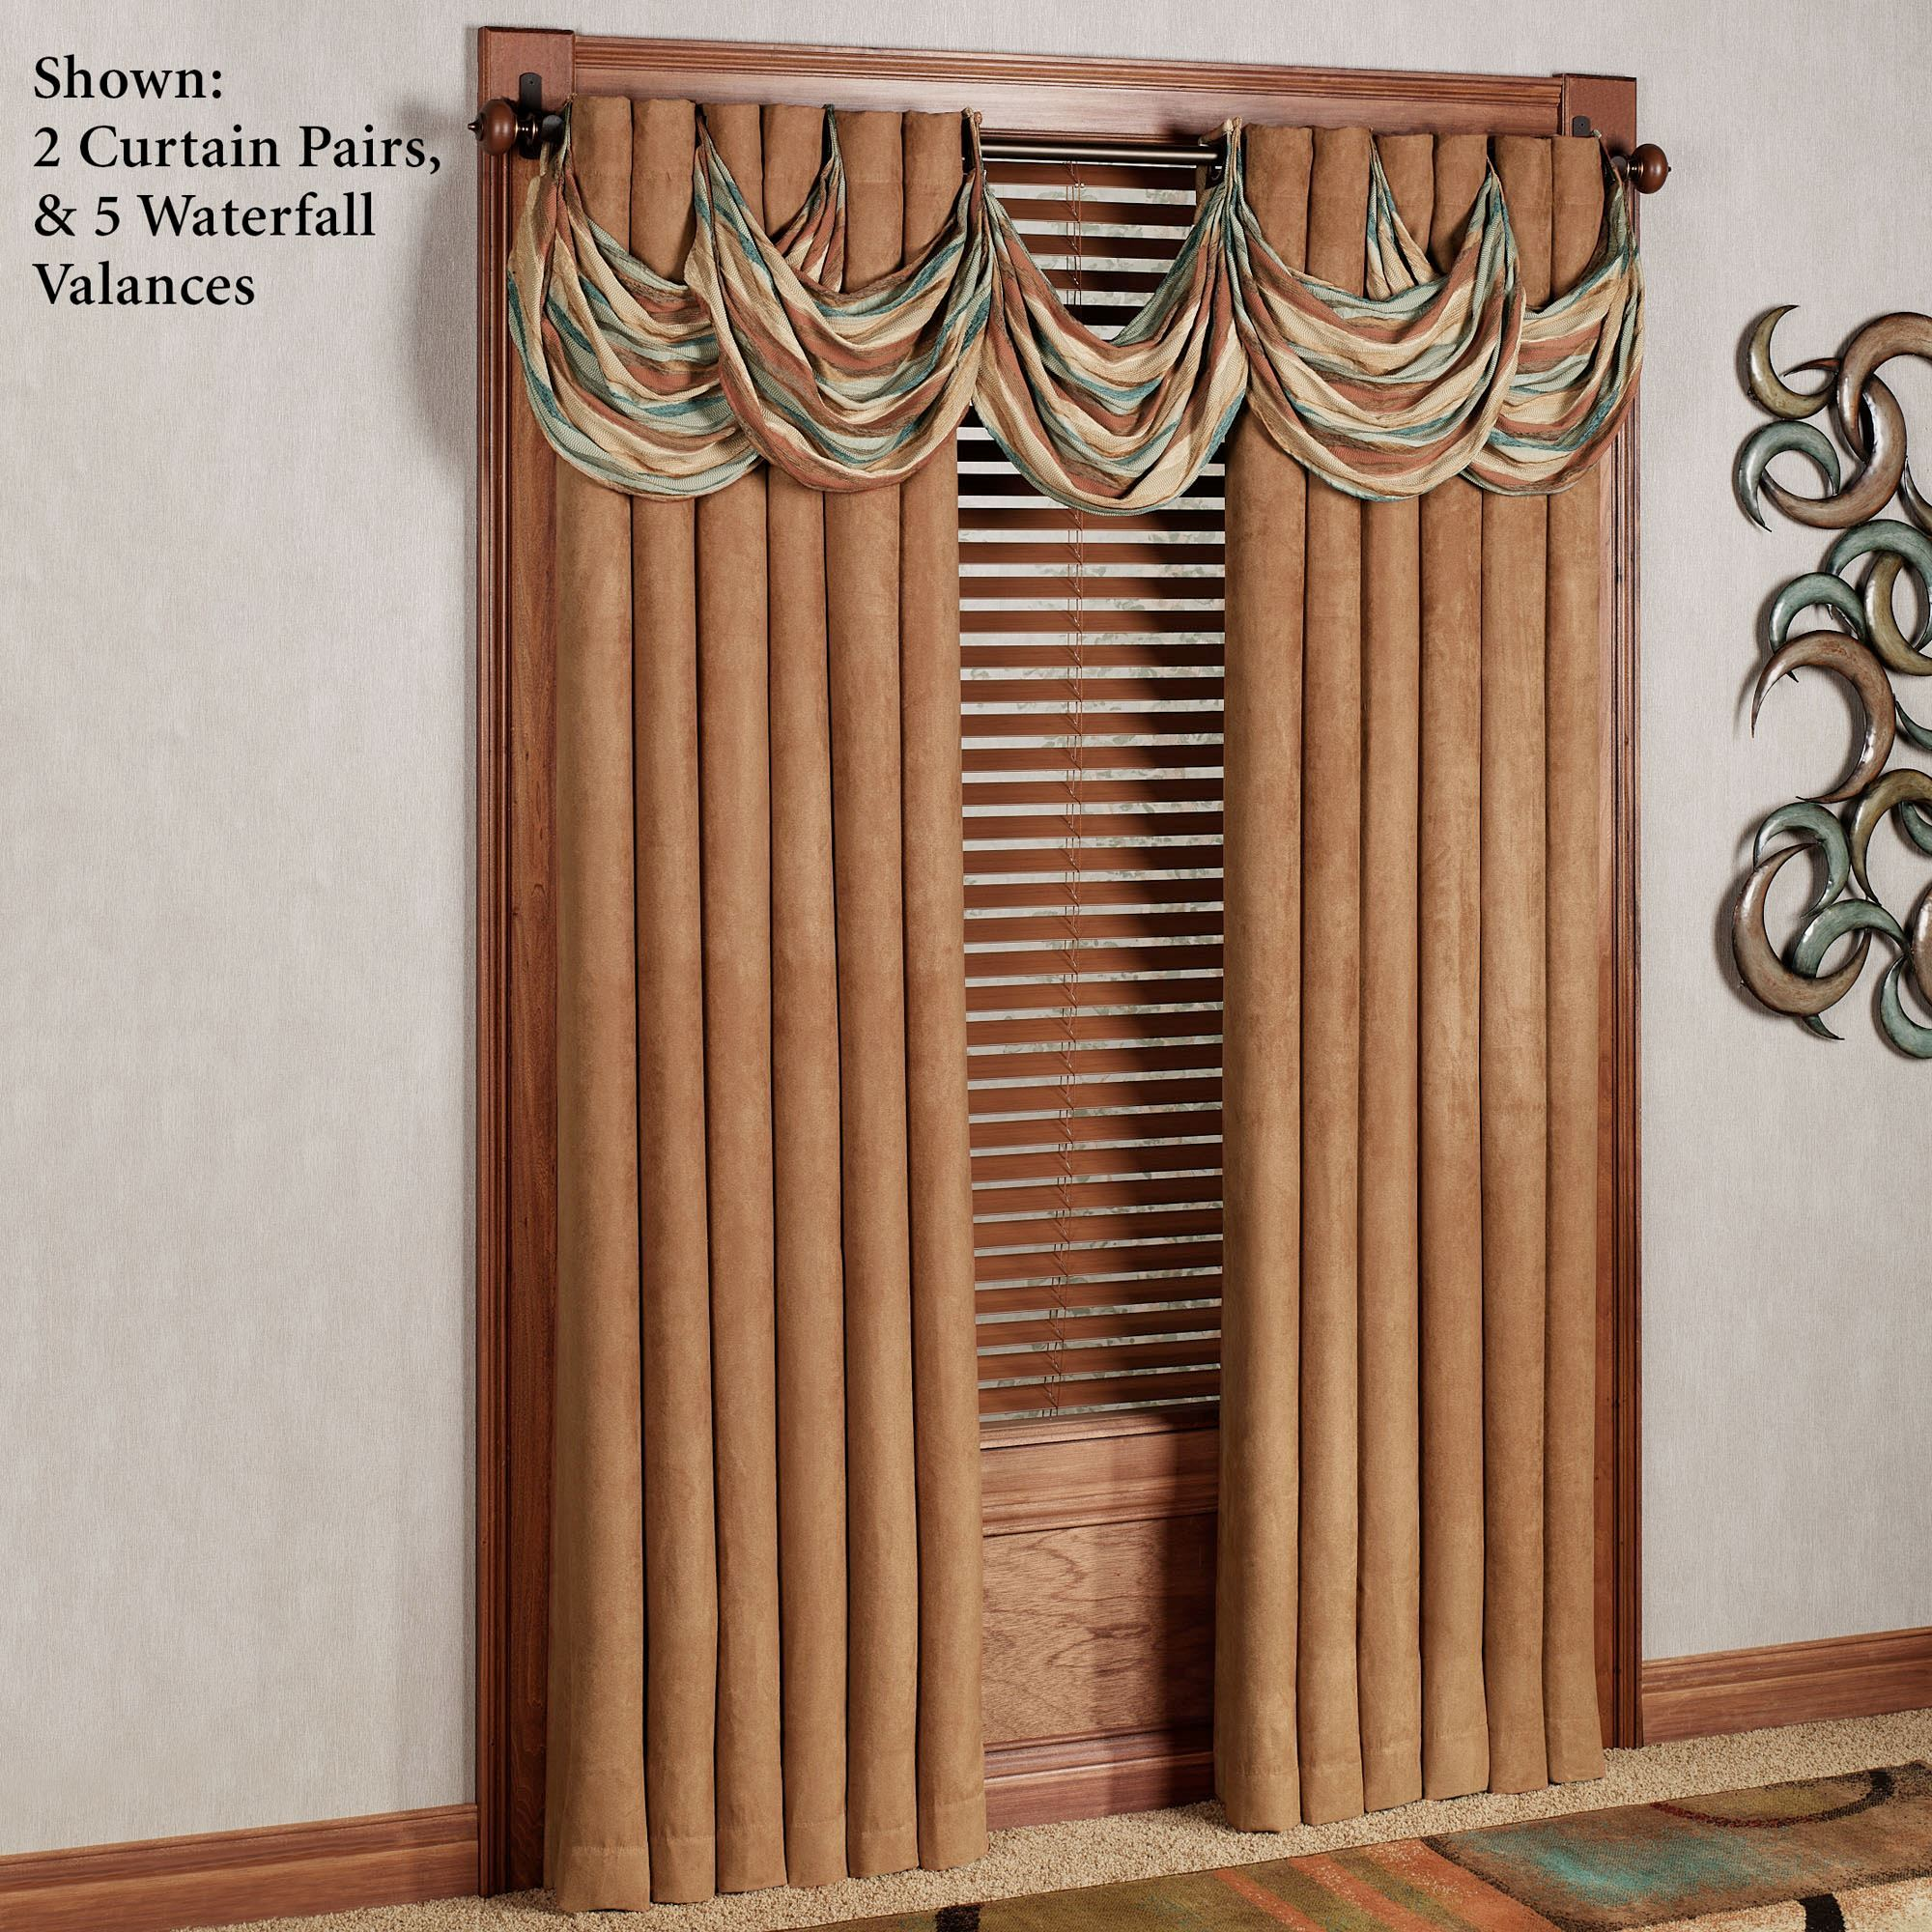 curtains hooks living a inch window how free curtain make for valance long pattern full swag swags patterns windows fishtail to room size large waterfall walmart of valances phenomenal treatments